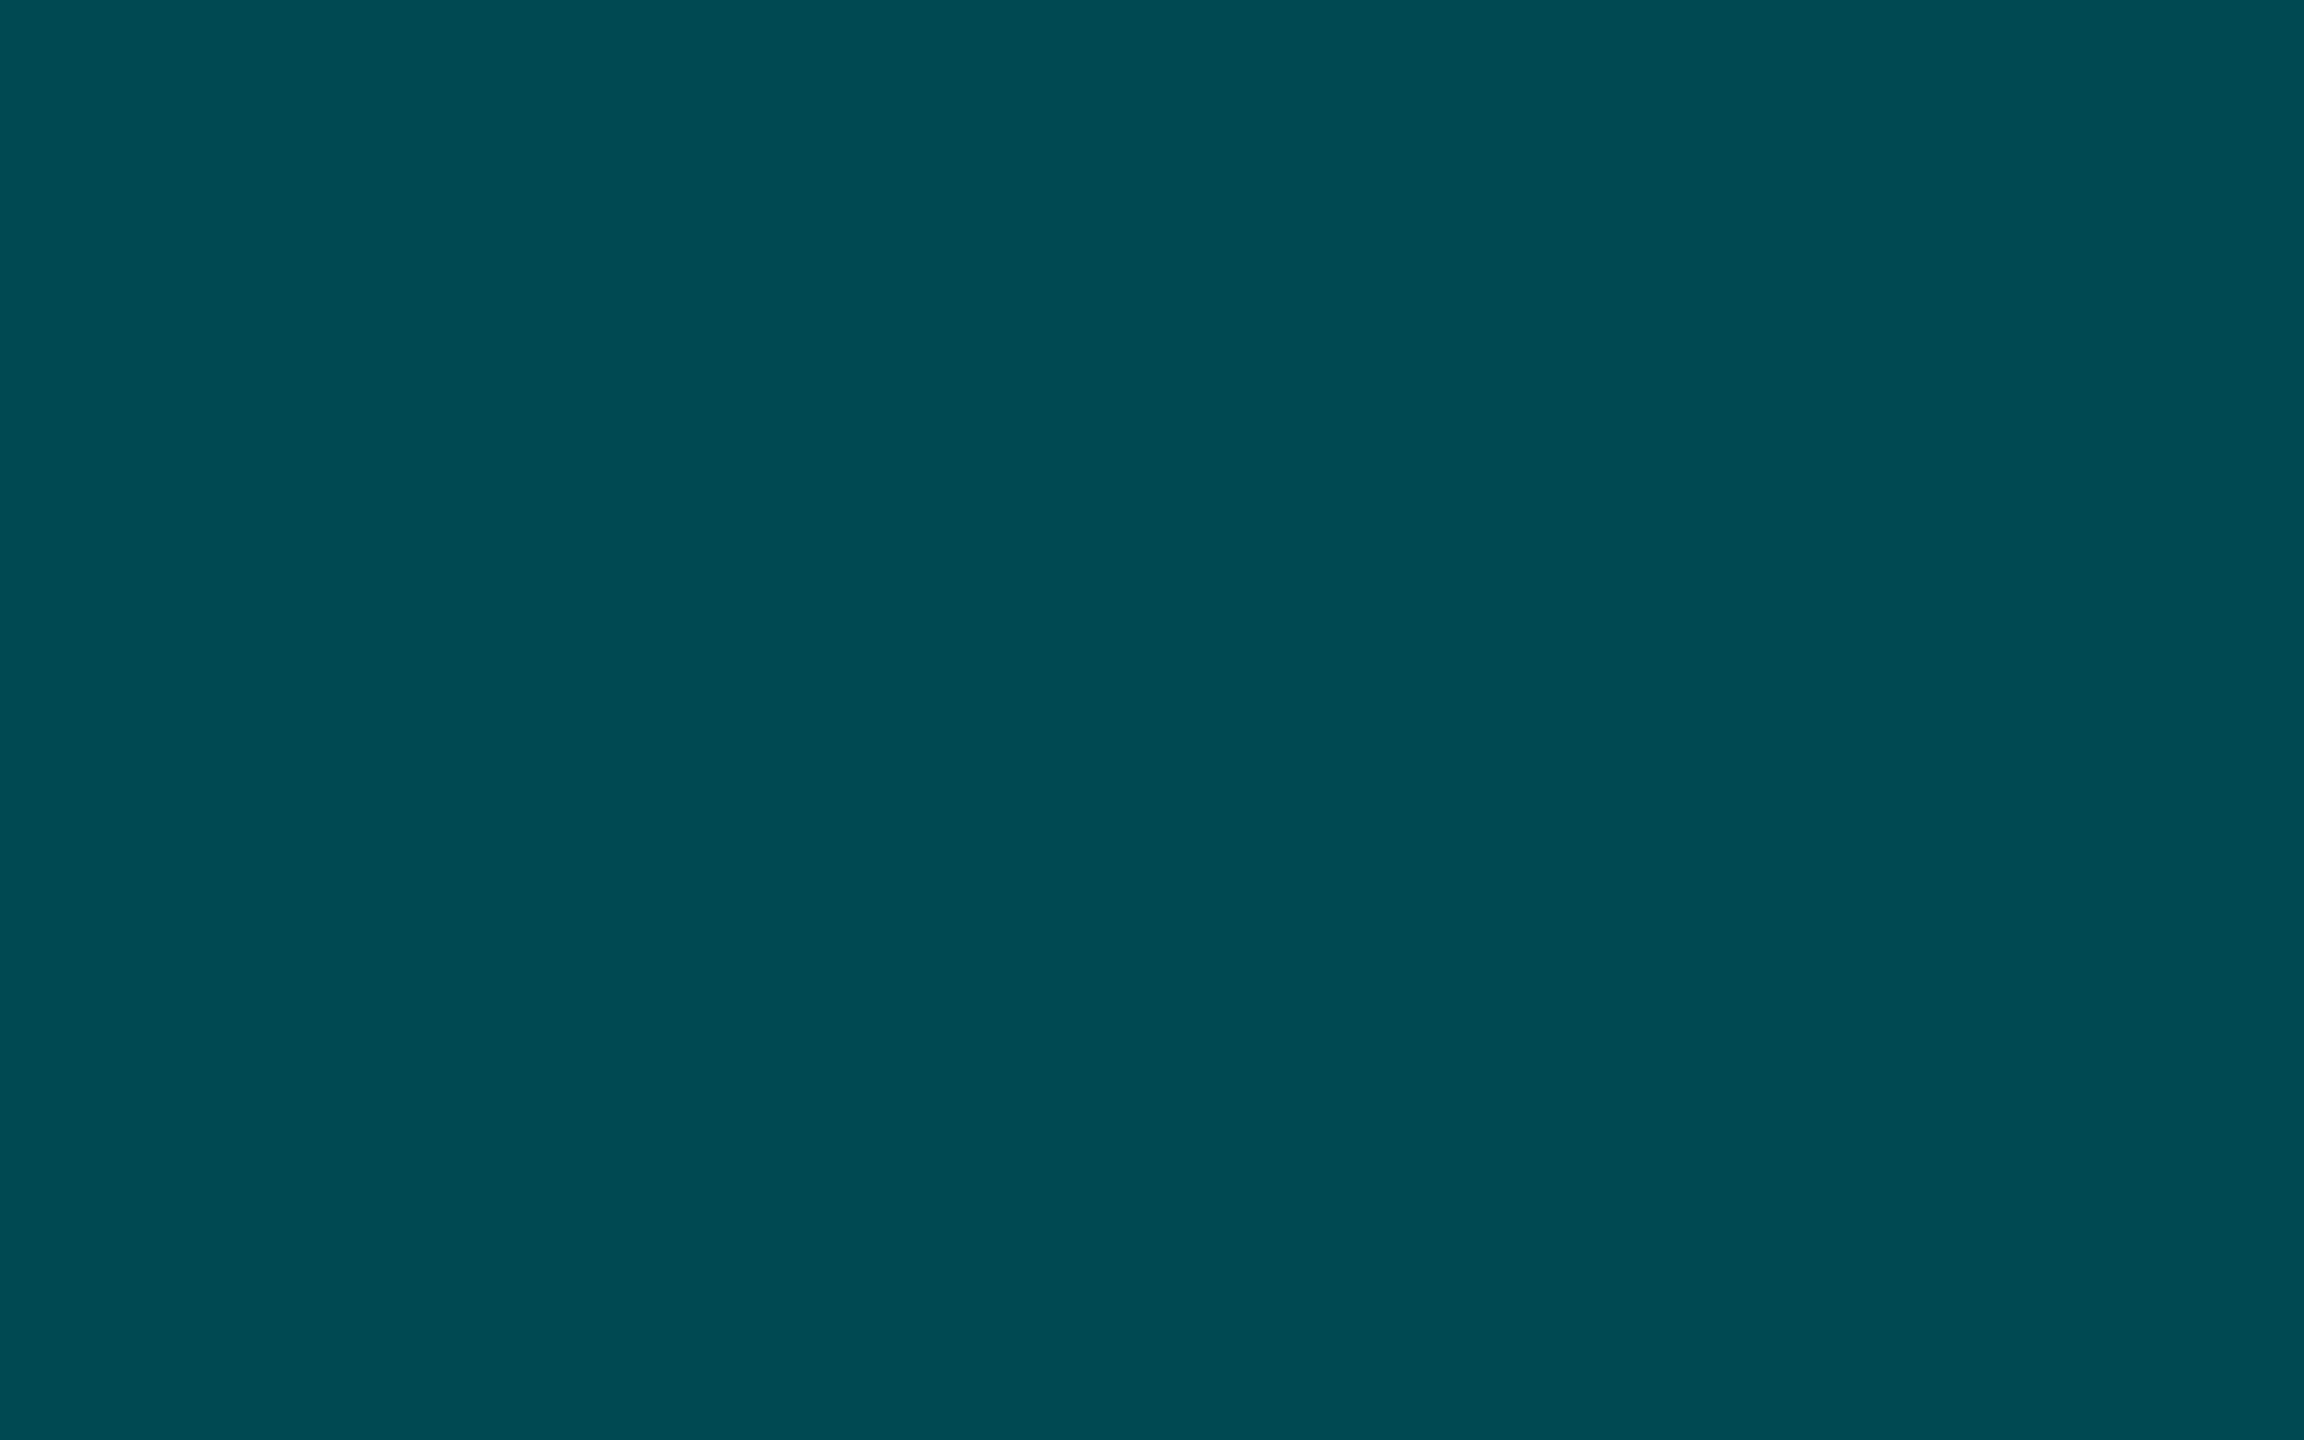 2304x1440 Midnight Green Solid Color Background